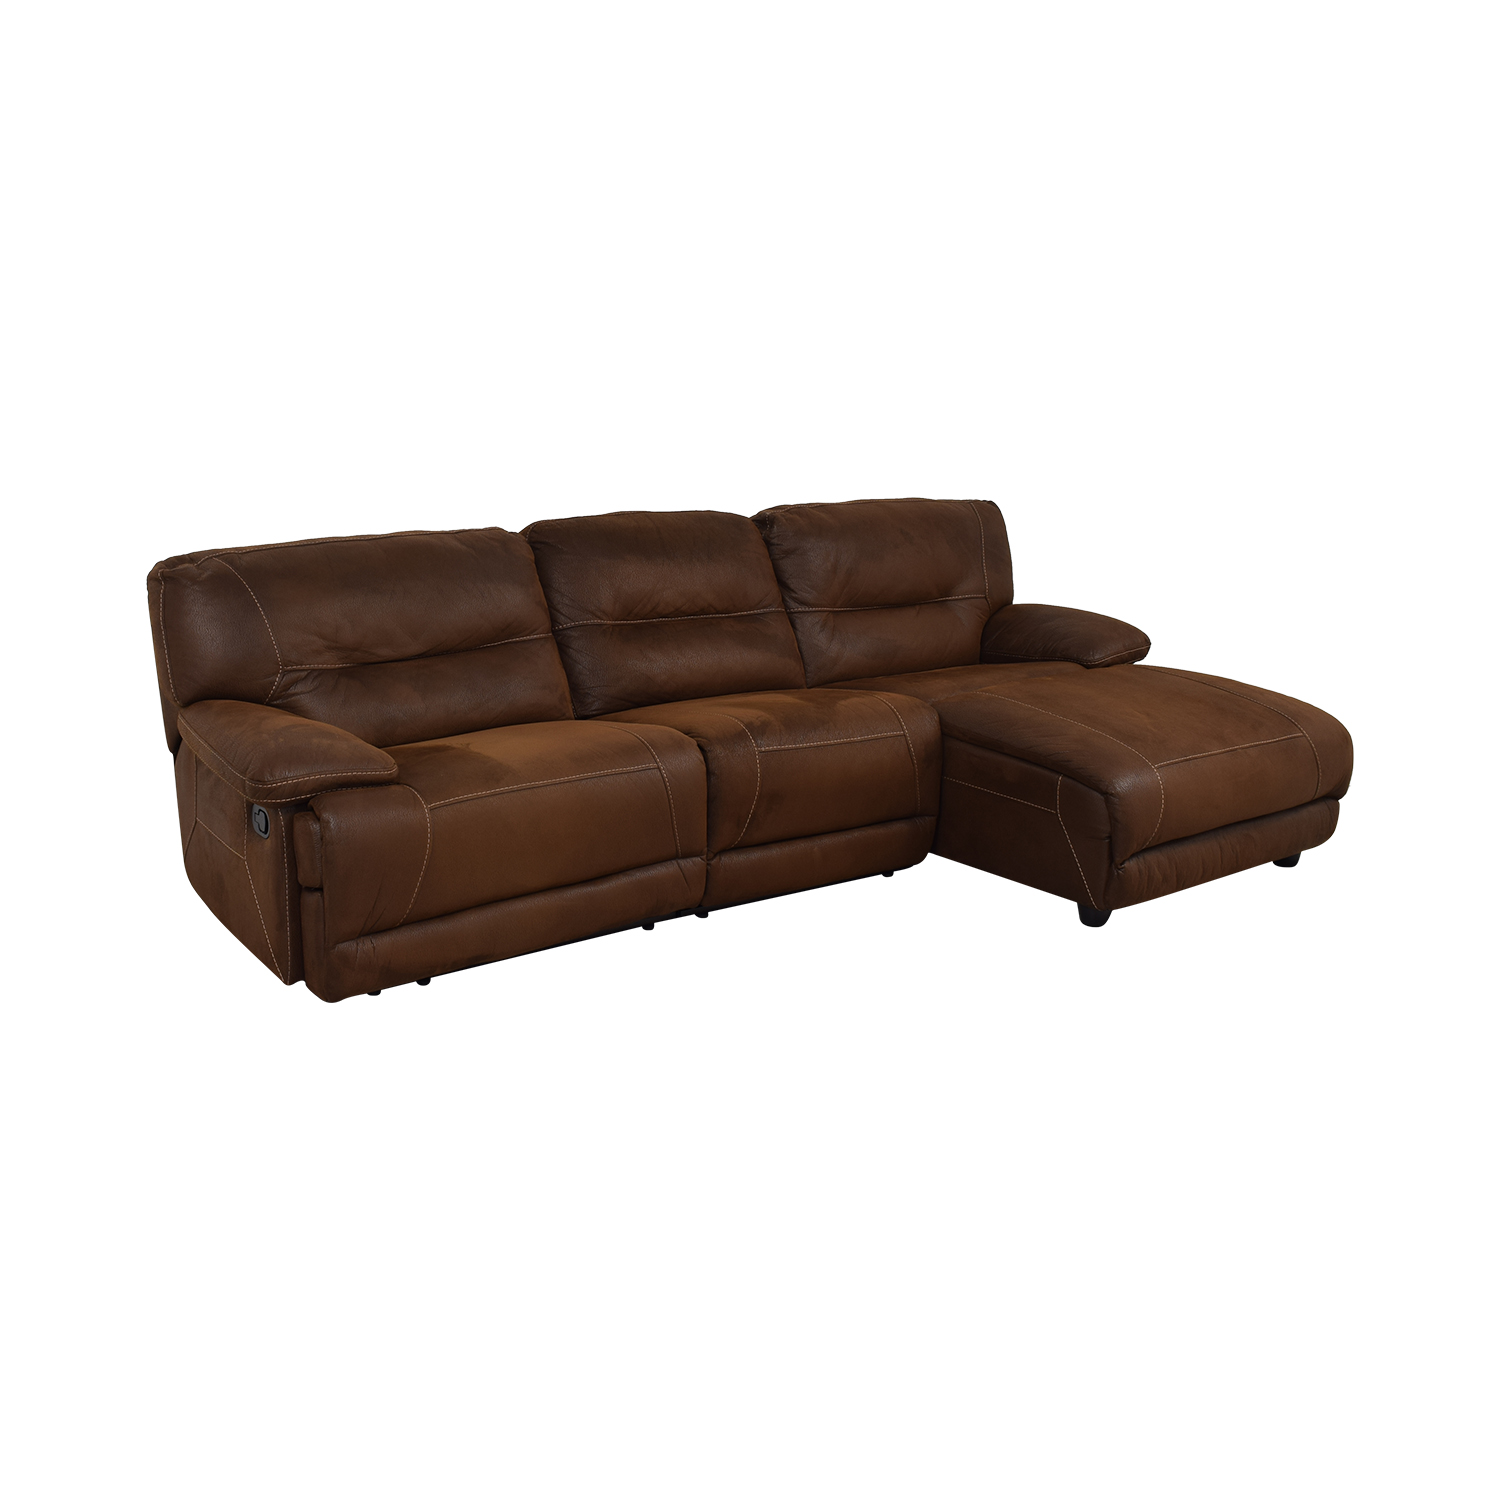 Bob's Discount Furniture Bob's Discount Furniture Brown Tufted Chaise Sectional Recliner dimensions